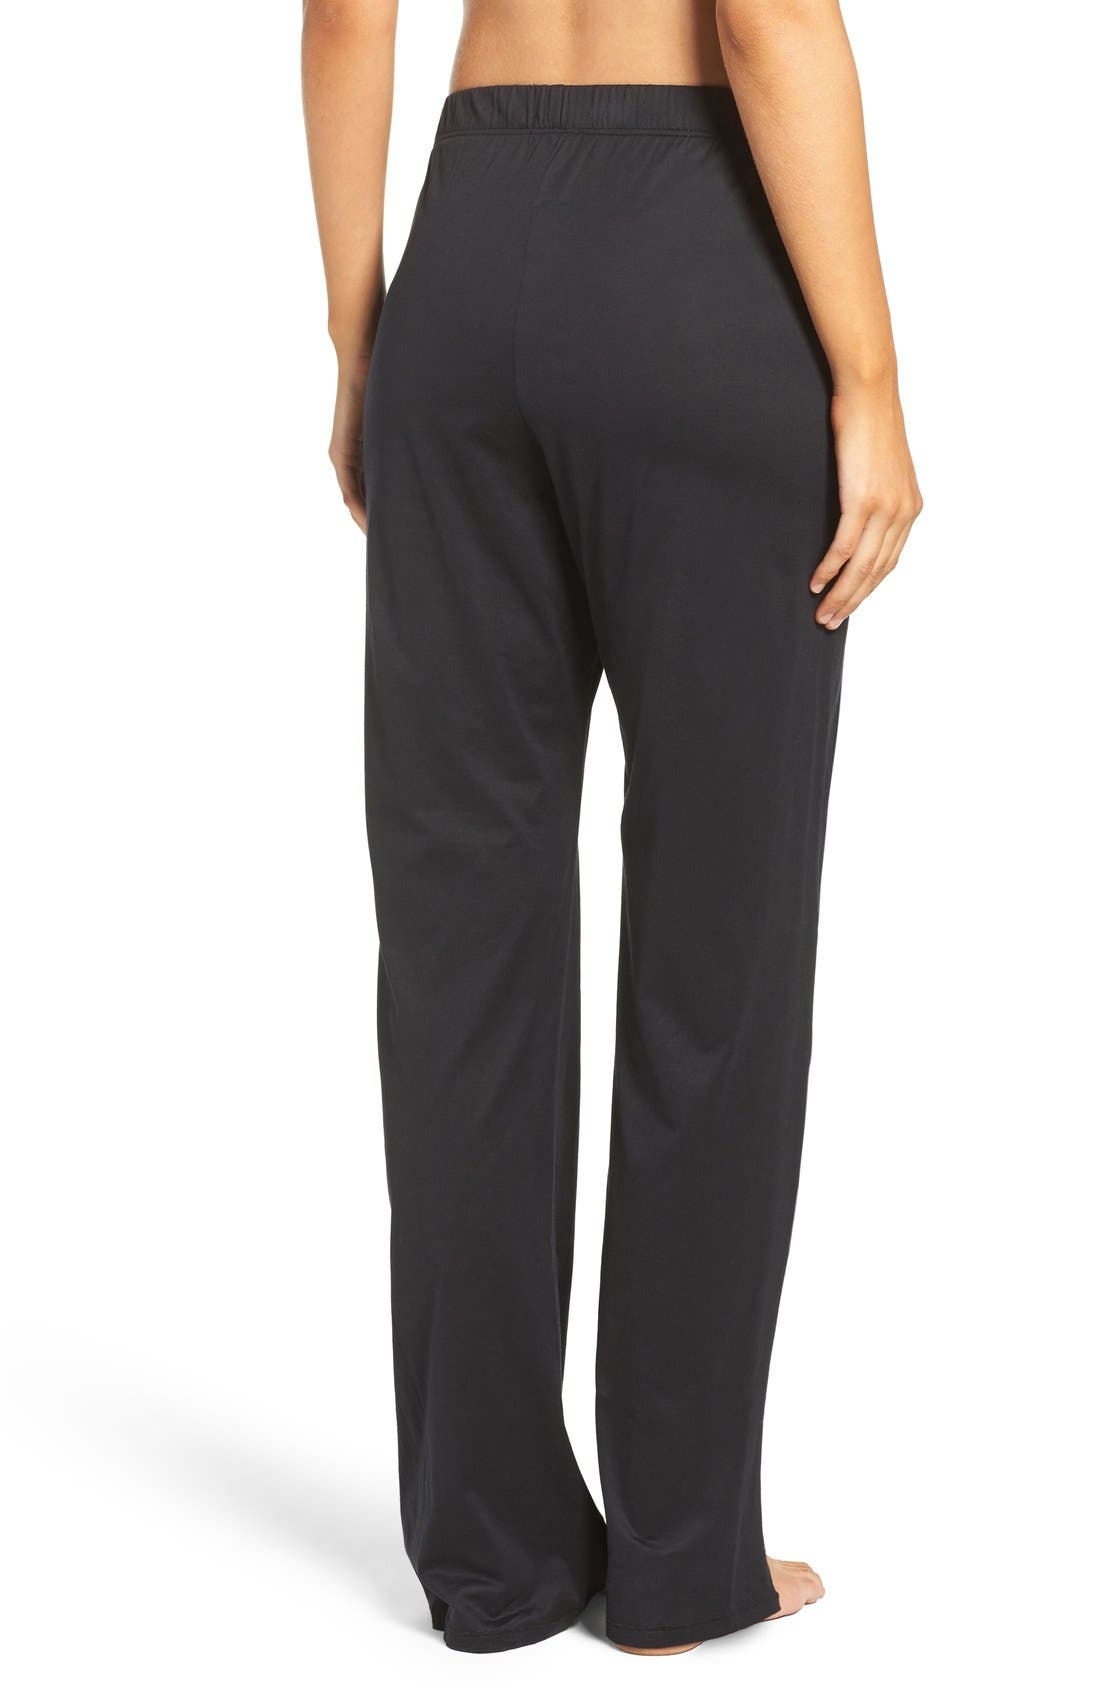 Cotton Lounge Pants,                             Alternate thumbnail 2, color,                             002